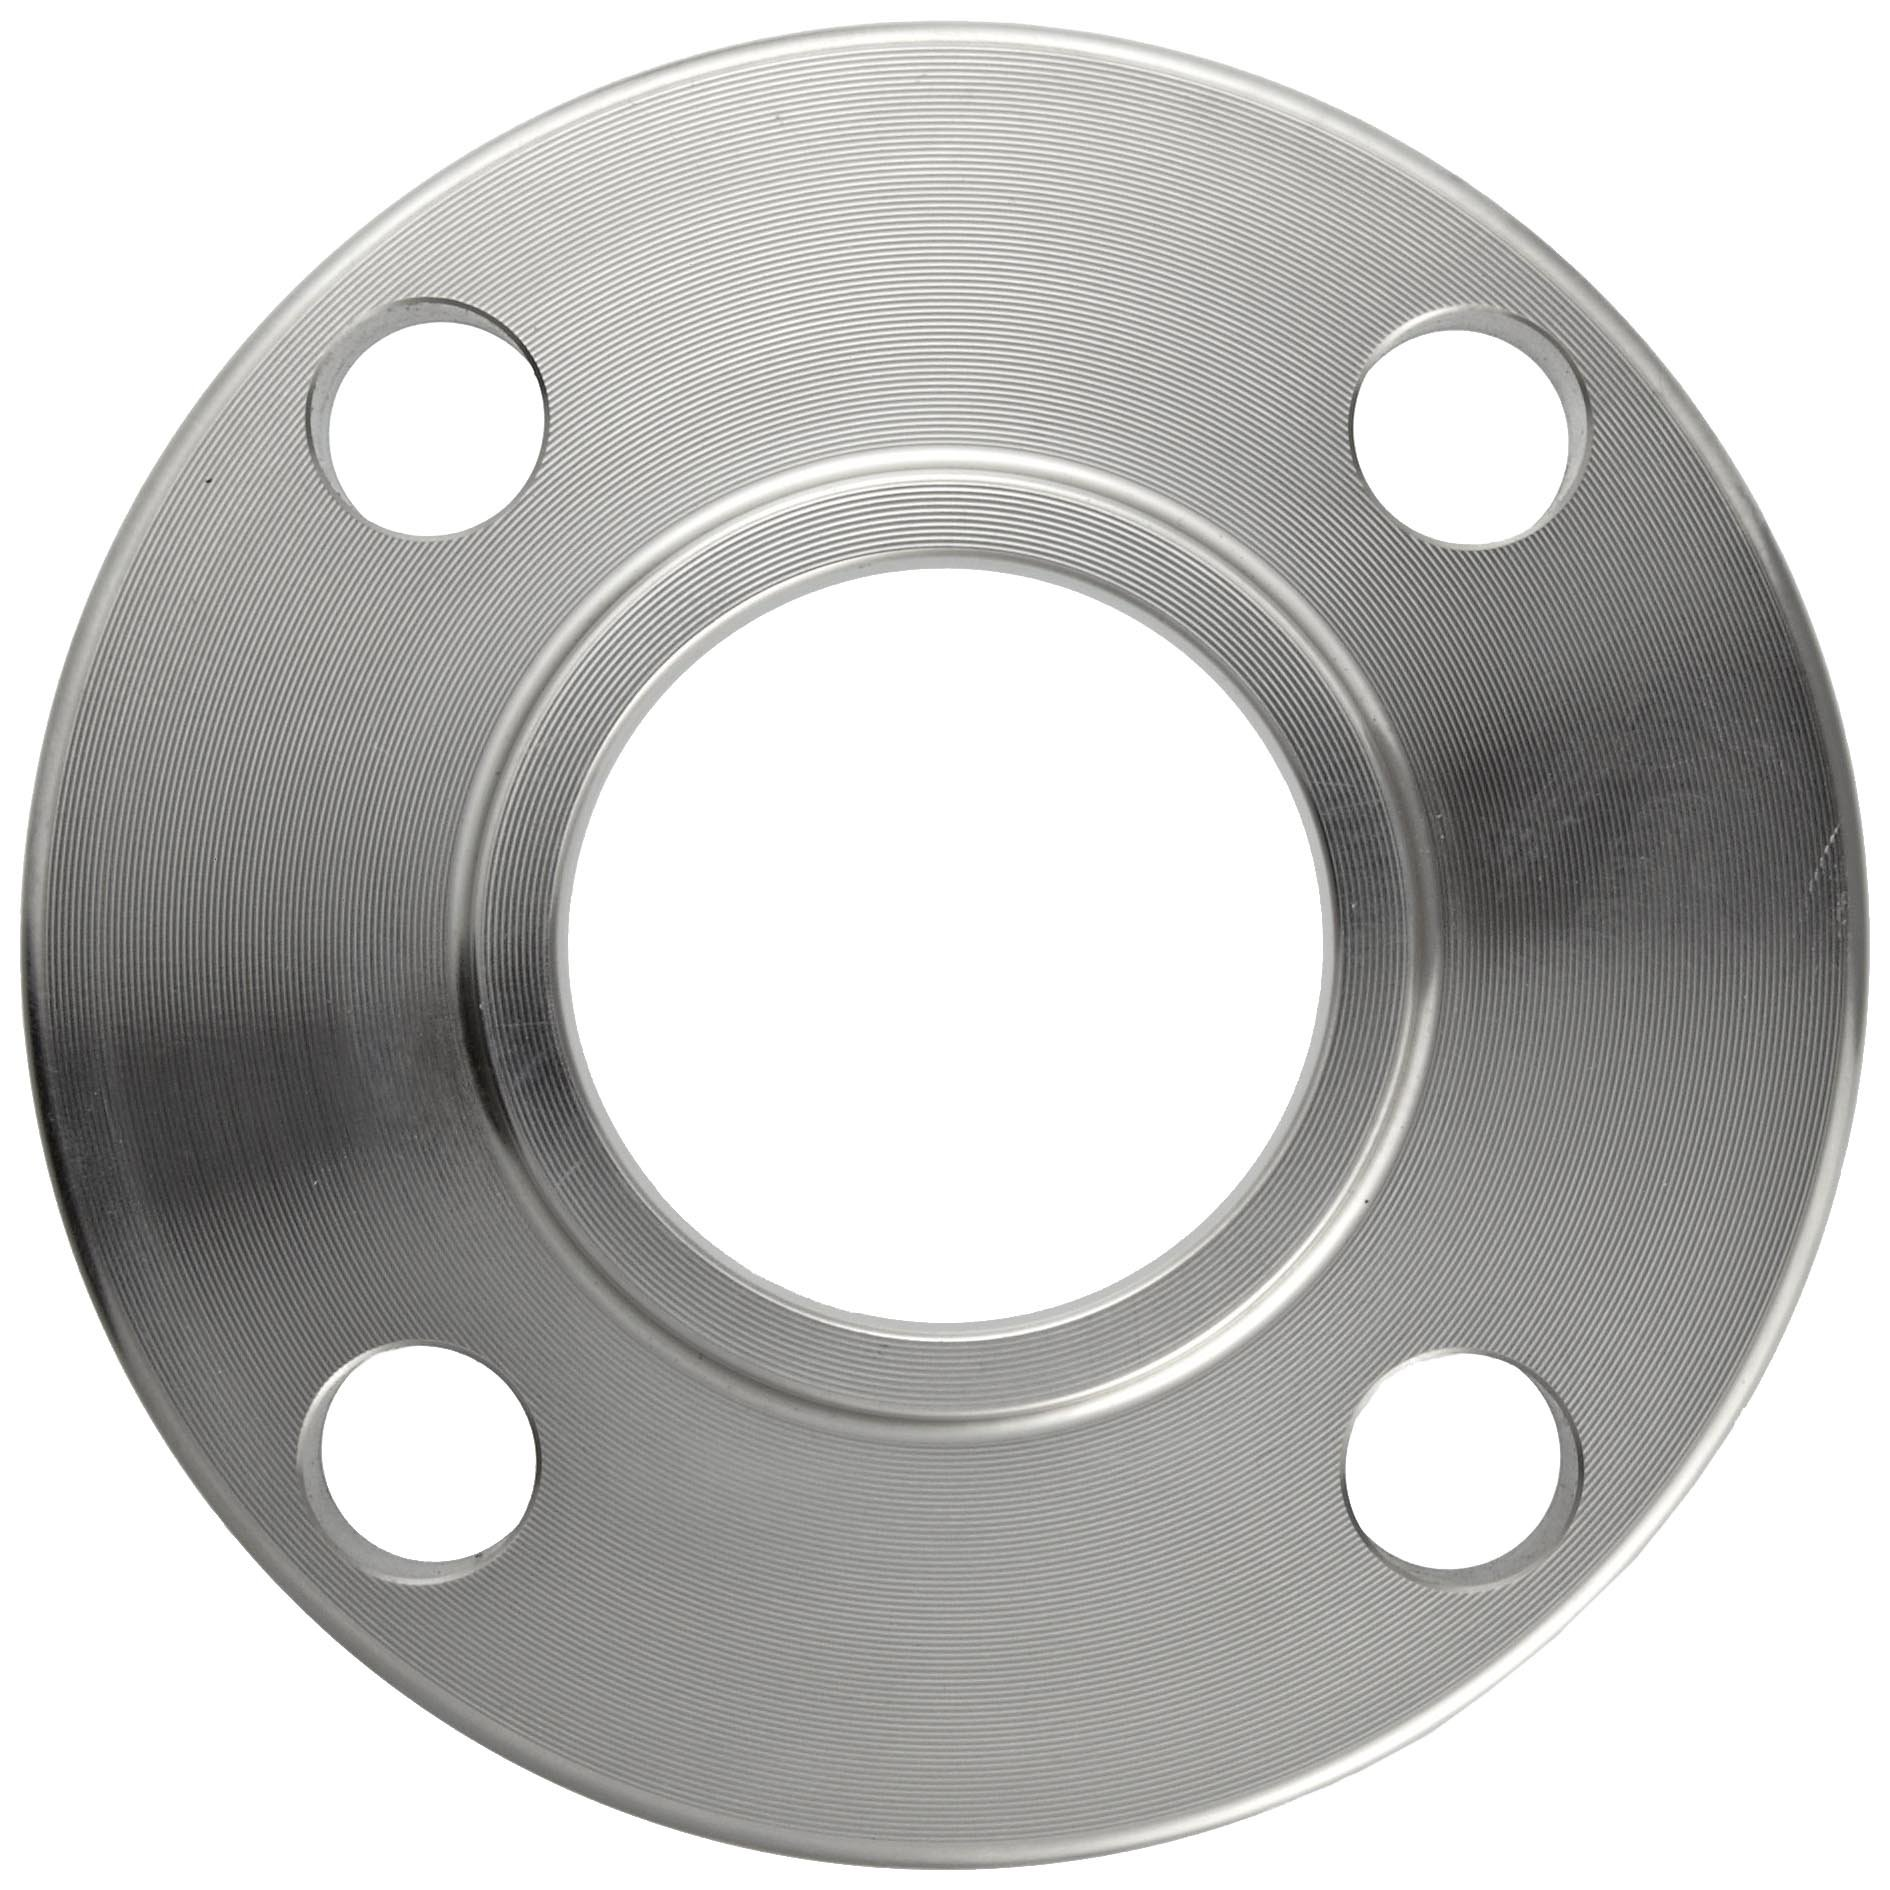 Lapped Joint Flanges Manufacturers in India